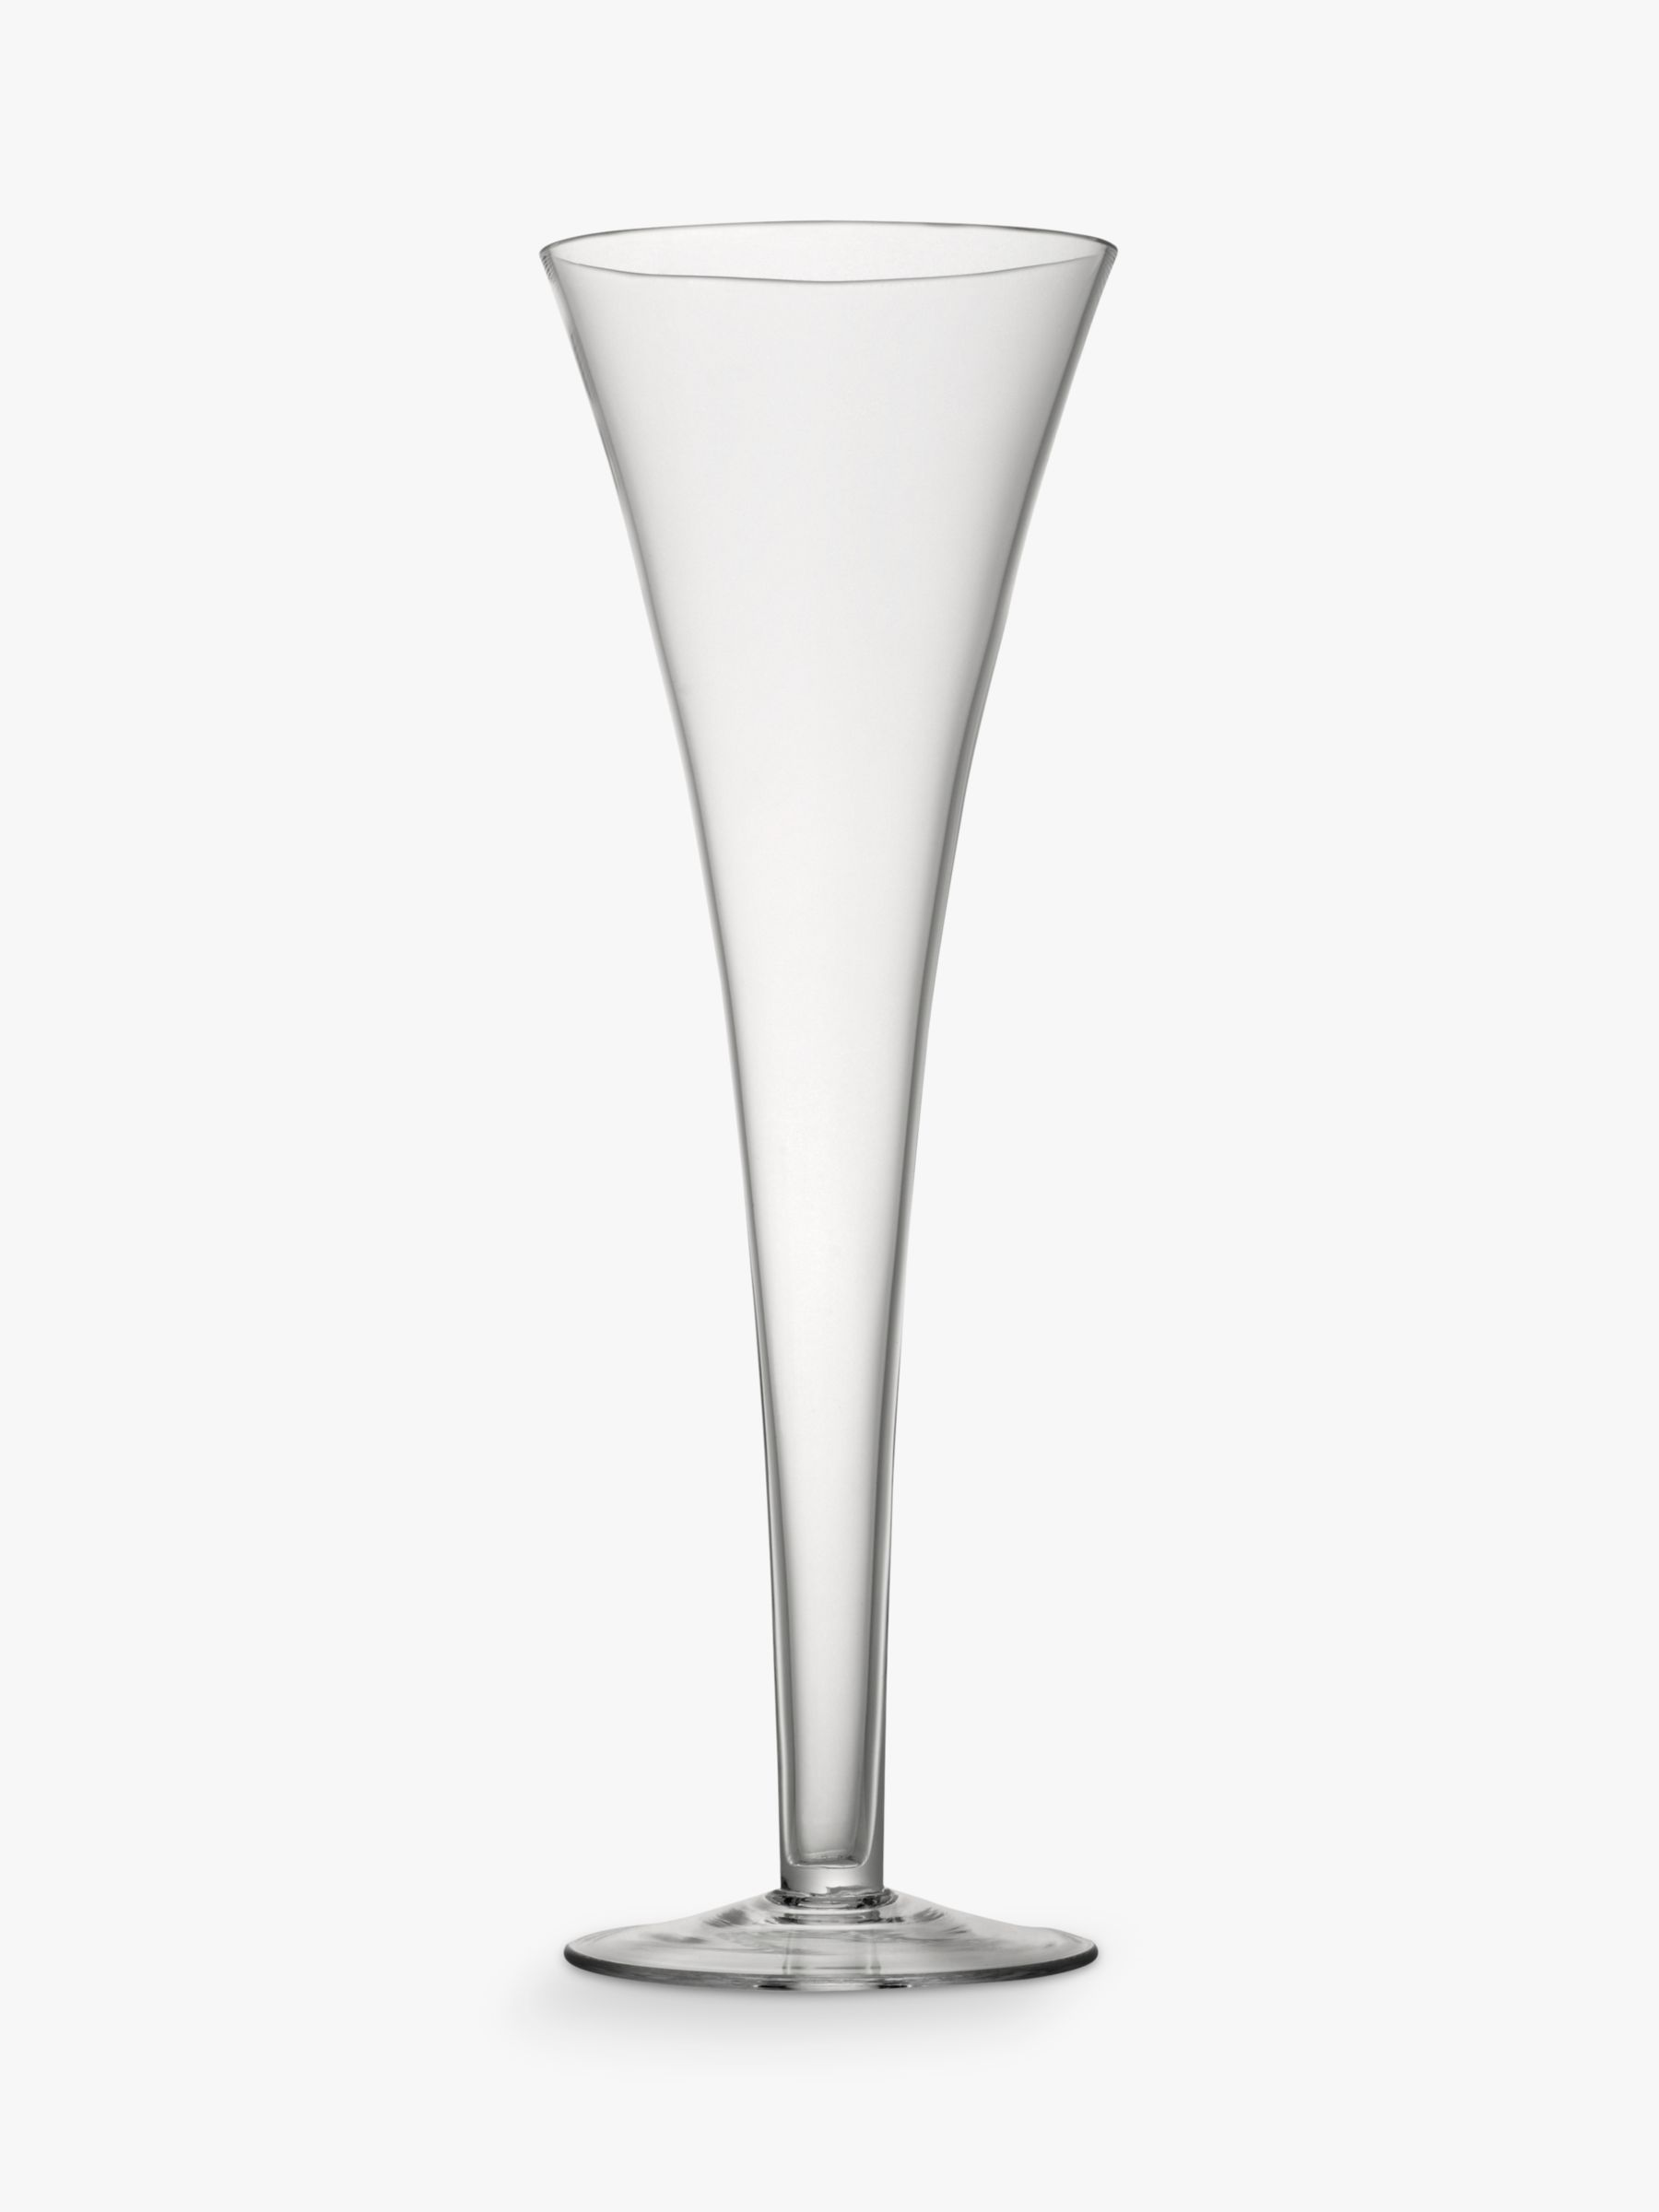 LSA International LSA International Bar Collection Flutes, Set of 2, 200ml, Clear